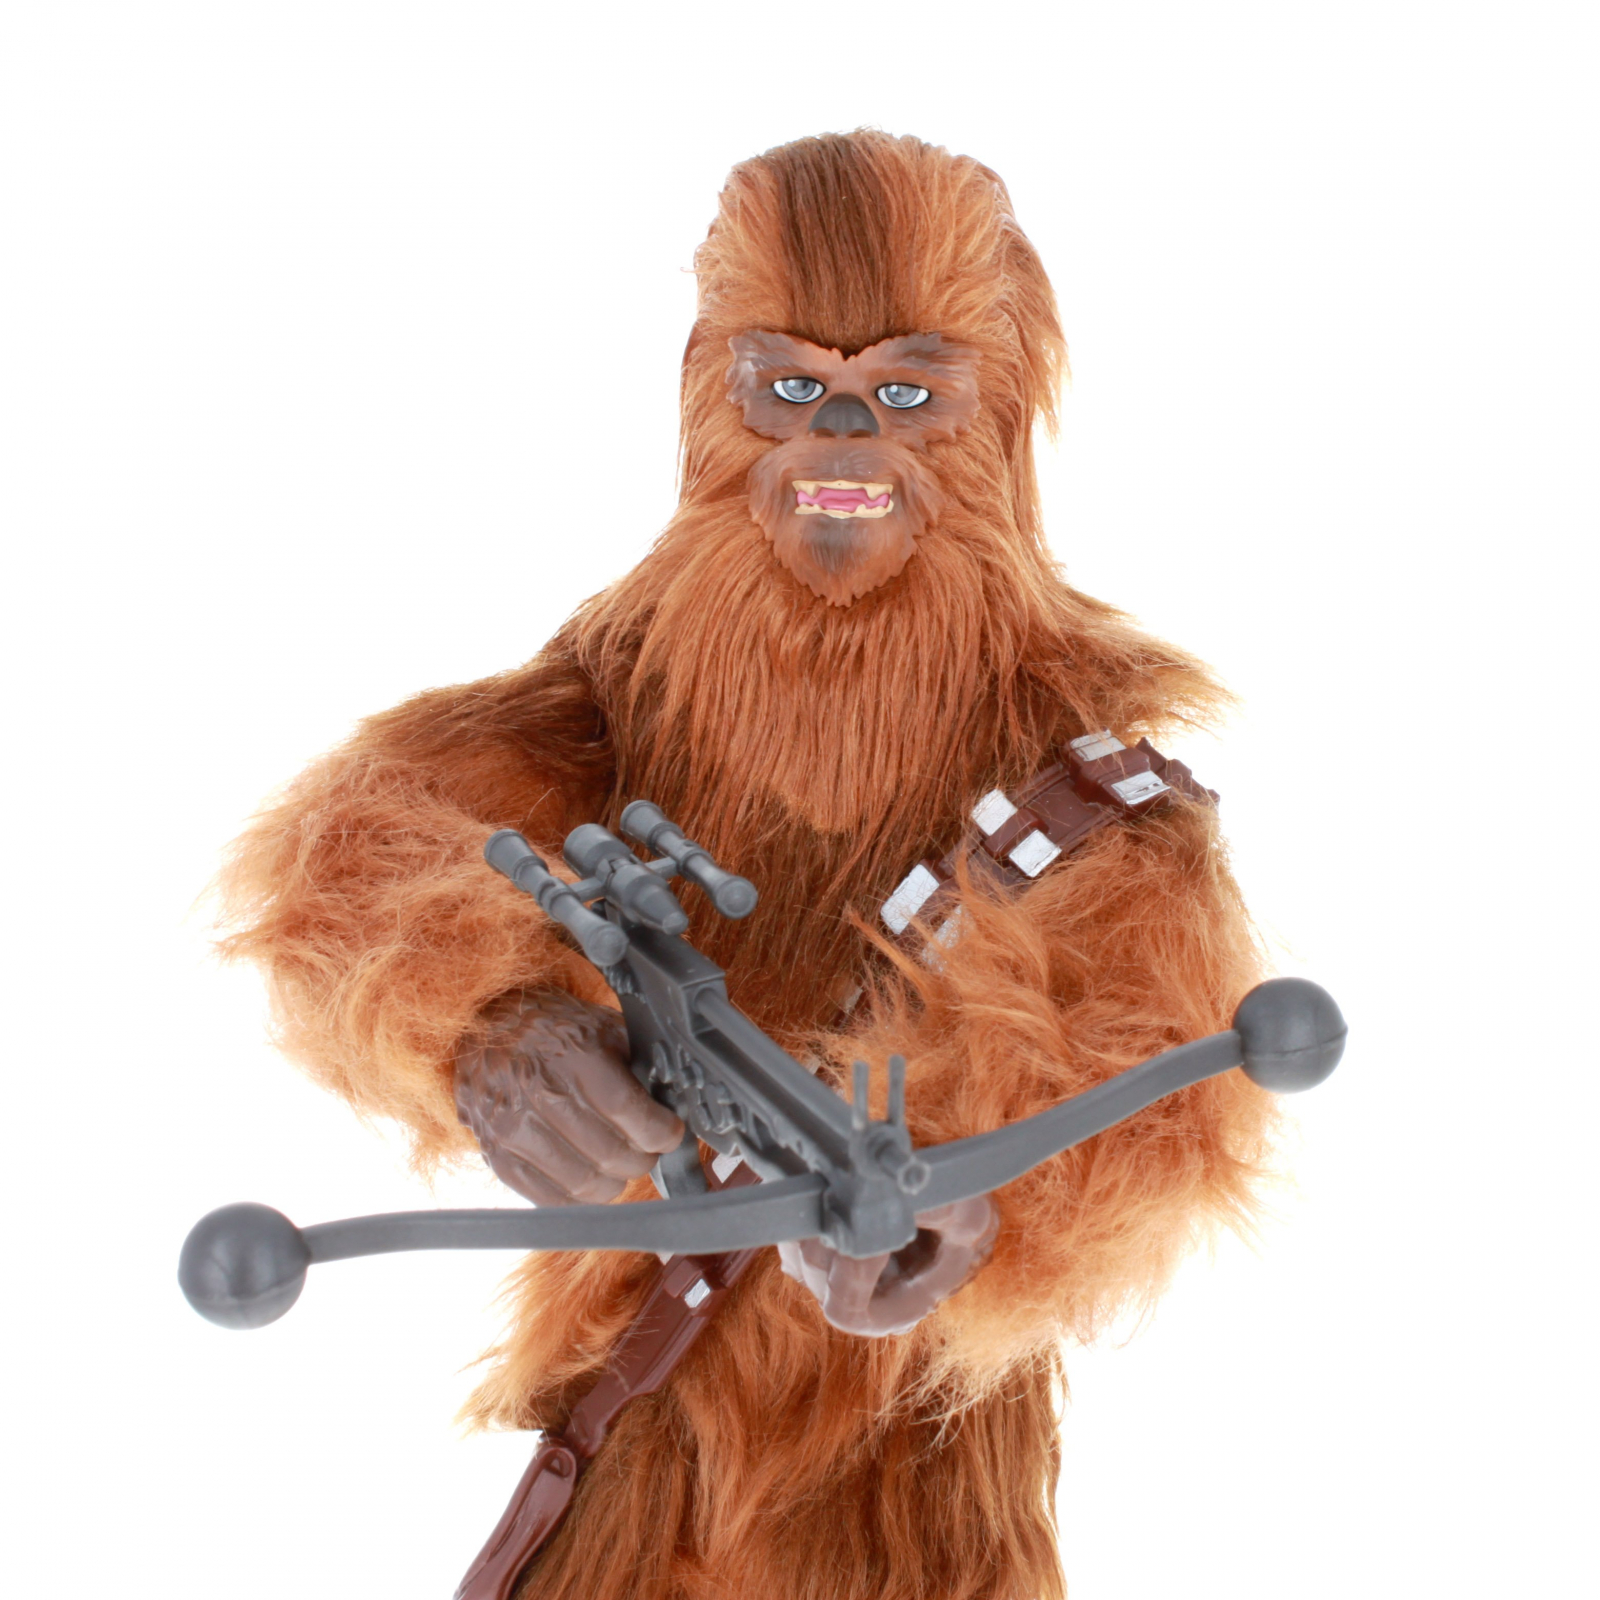 Star Wars Forces of Destiny Roaring Chewbacca Action Figure